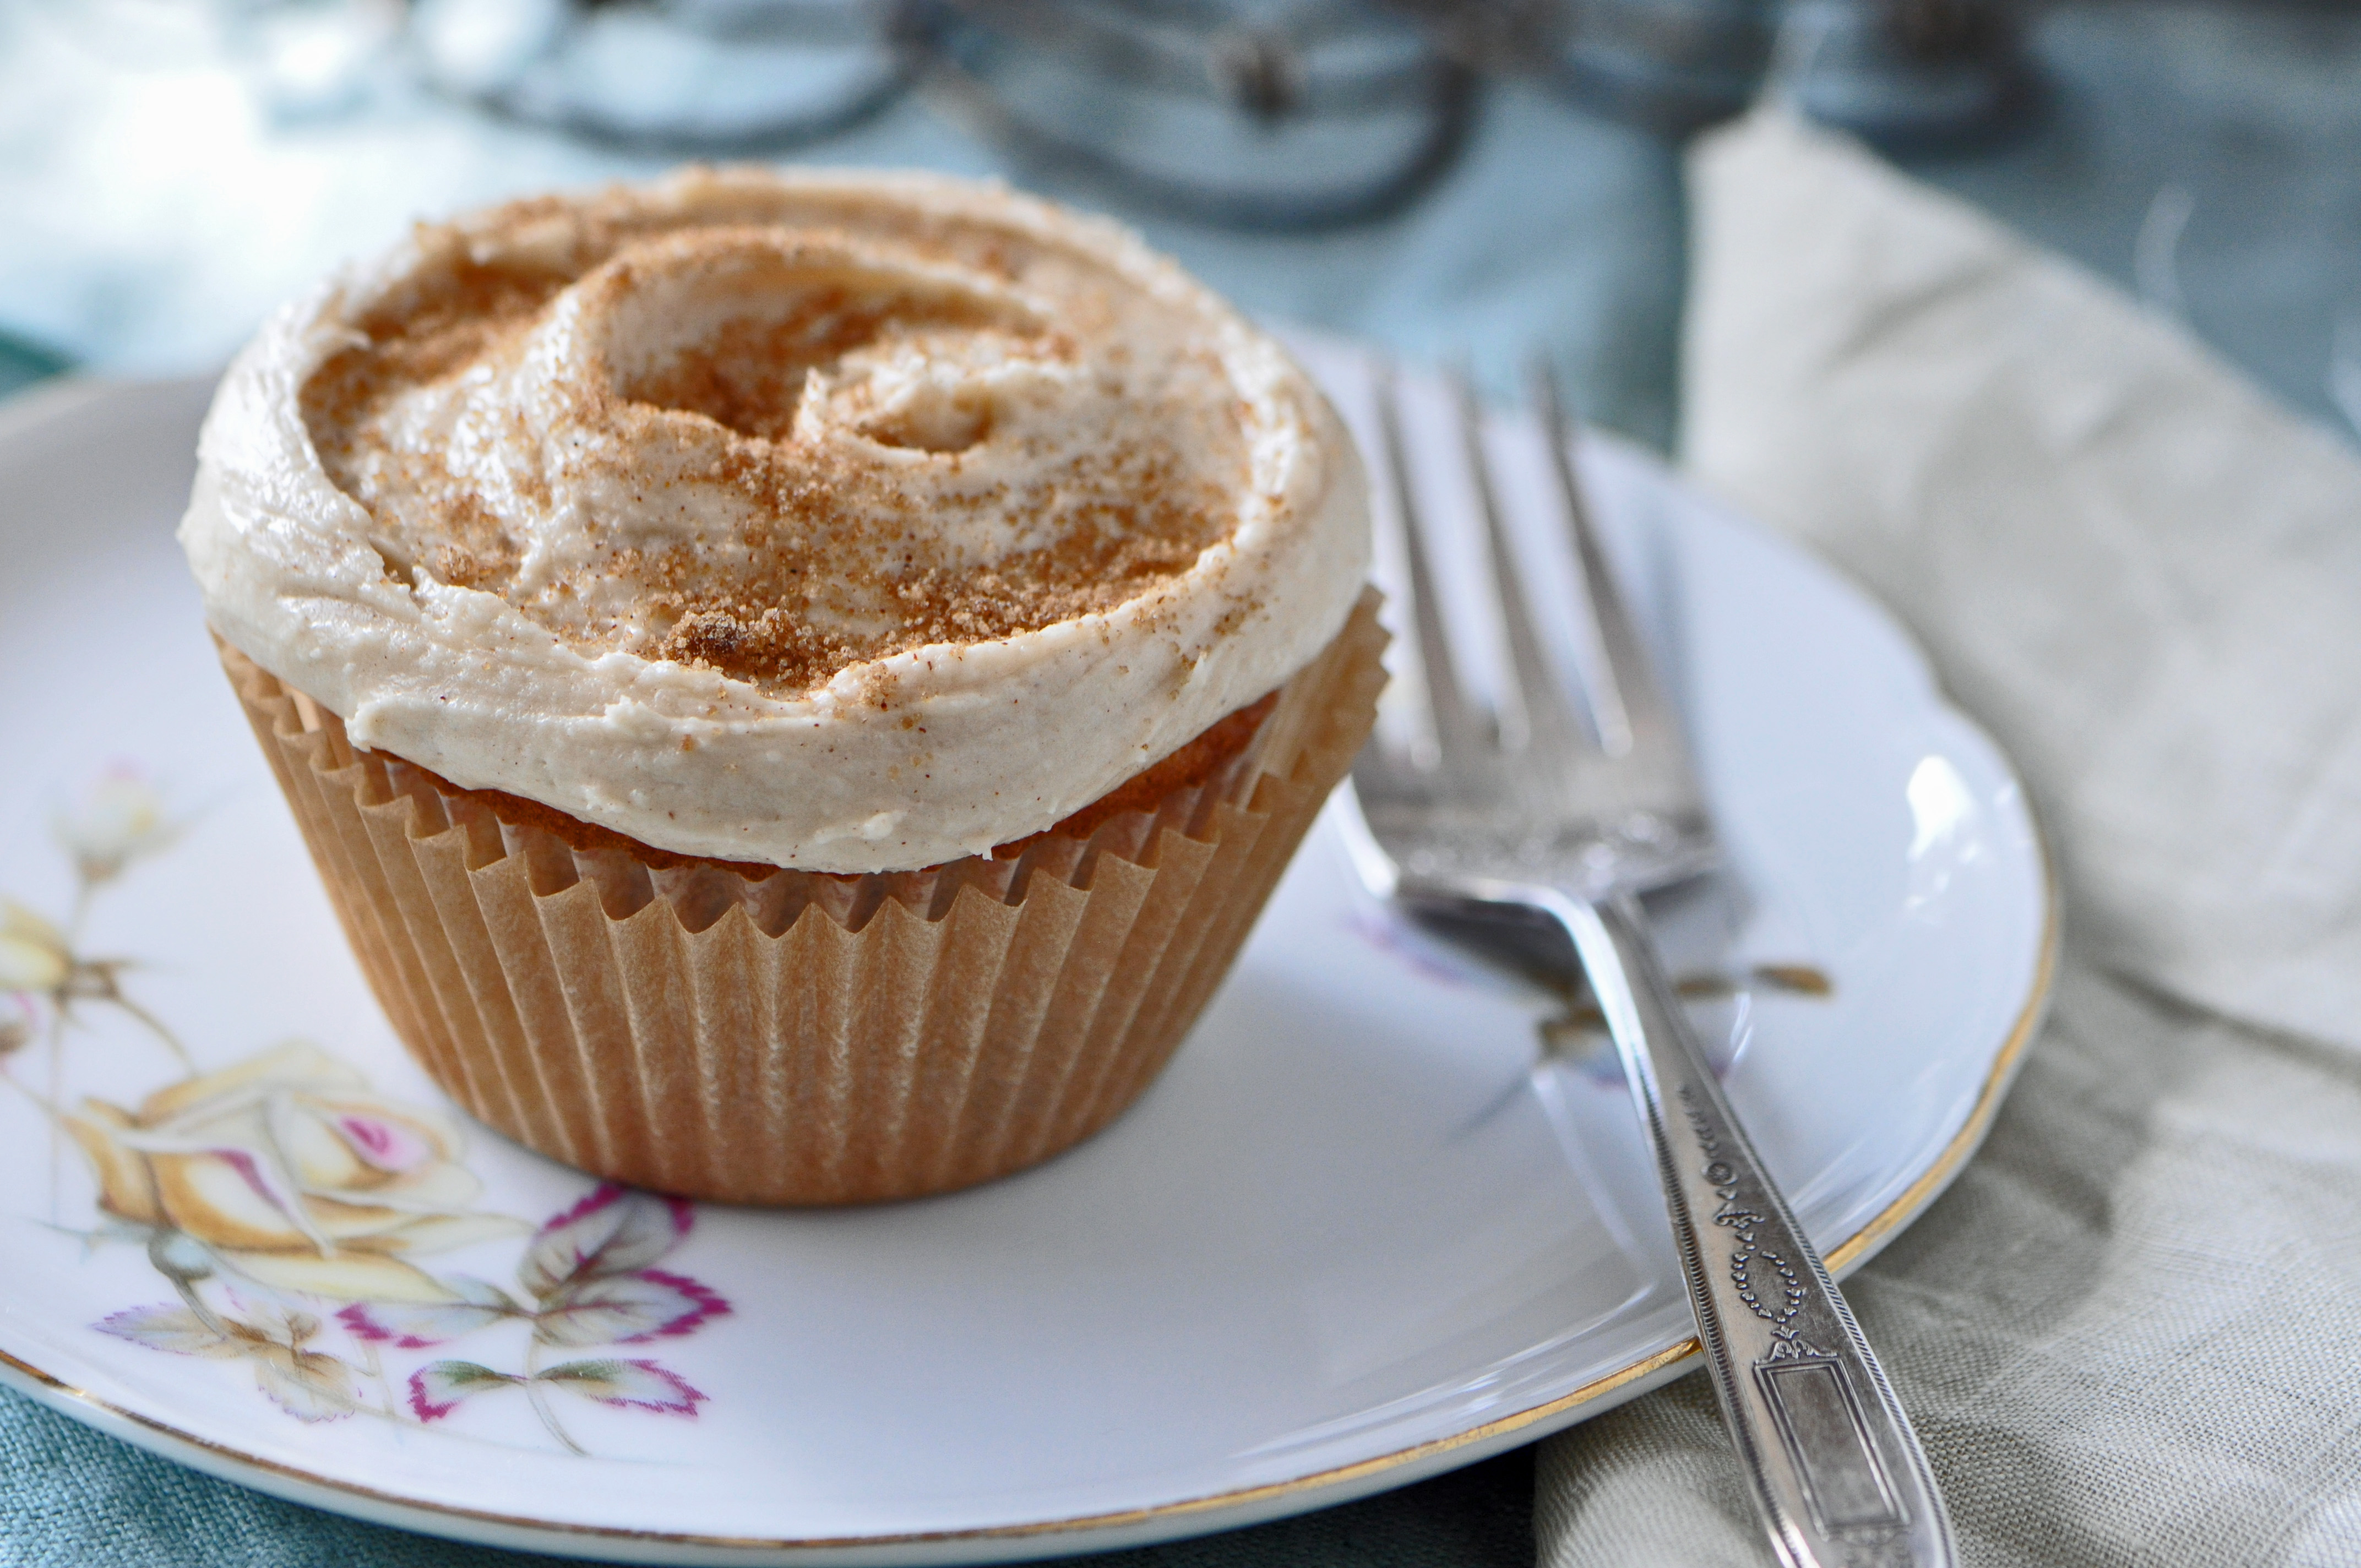 Brown Sugar Cinnamon Cupcakes with Frosting